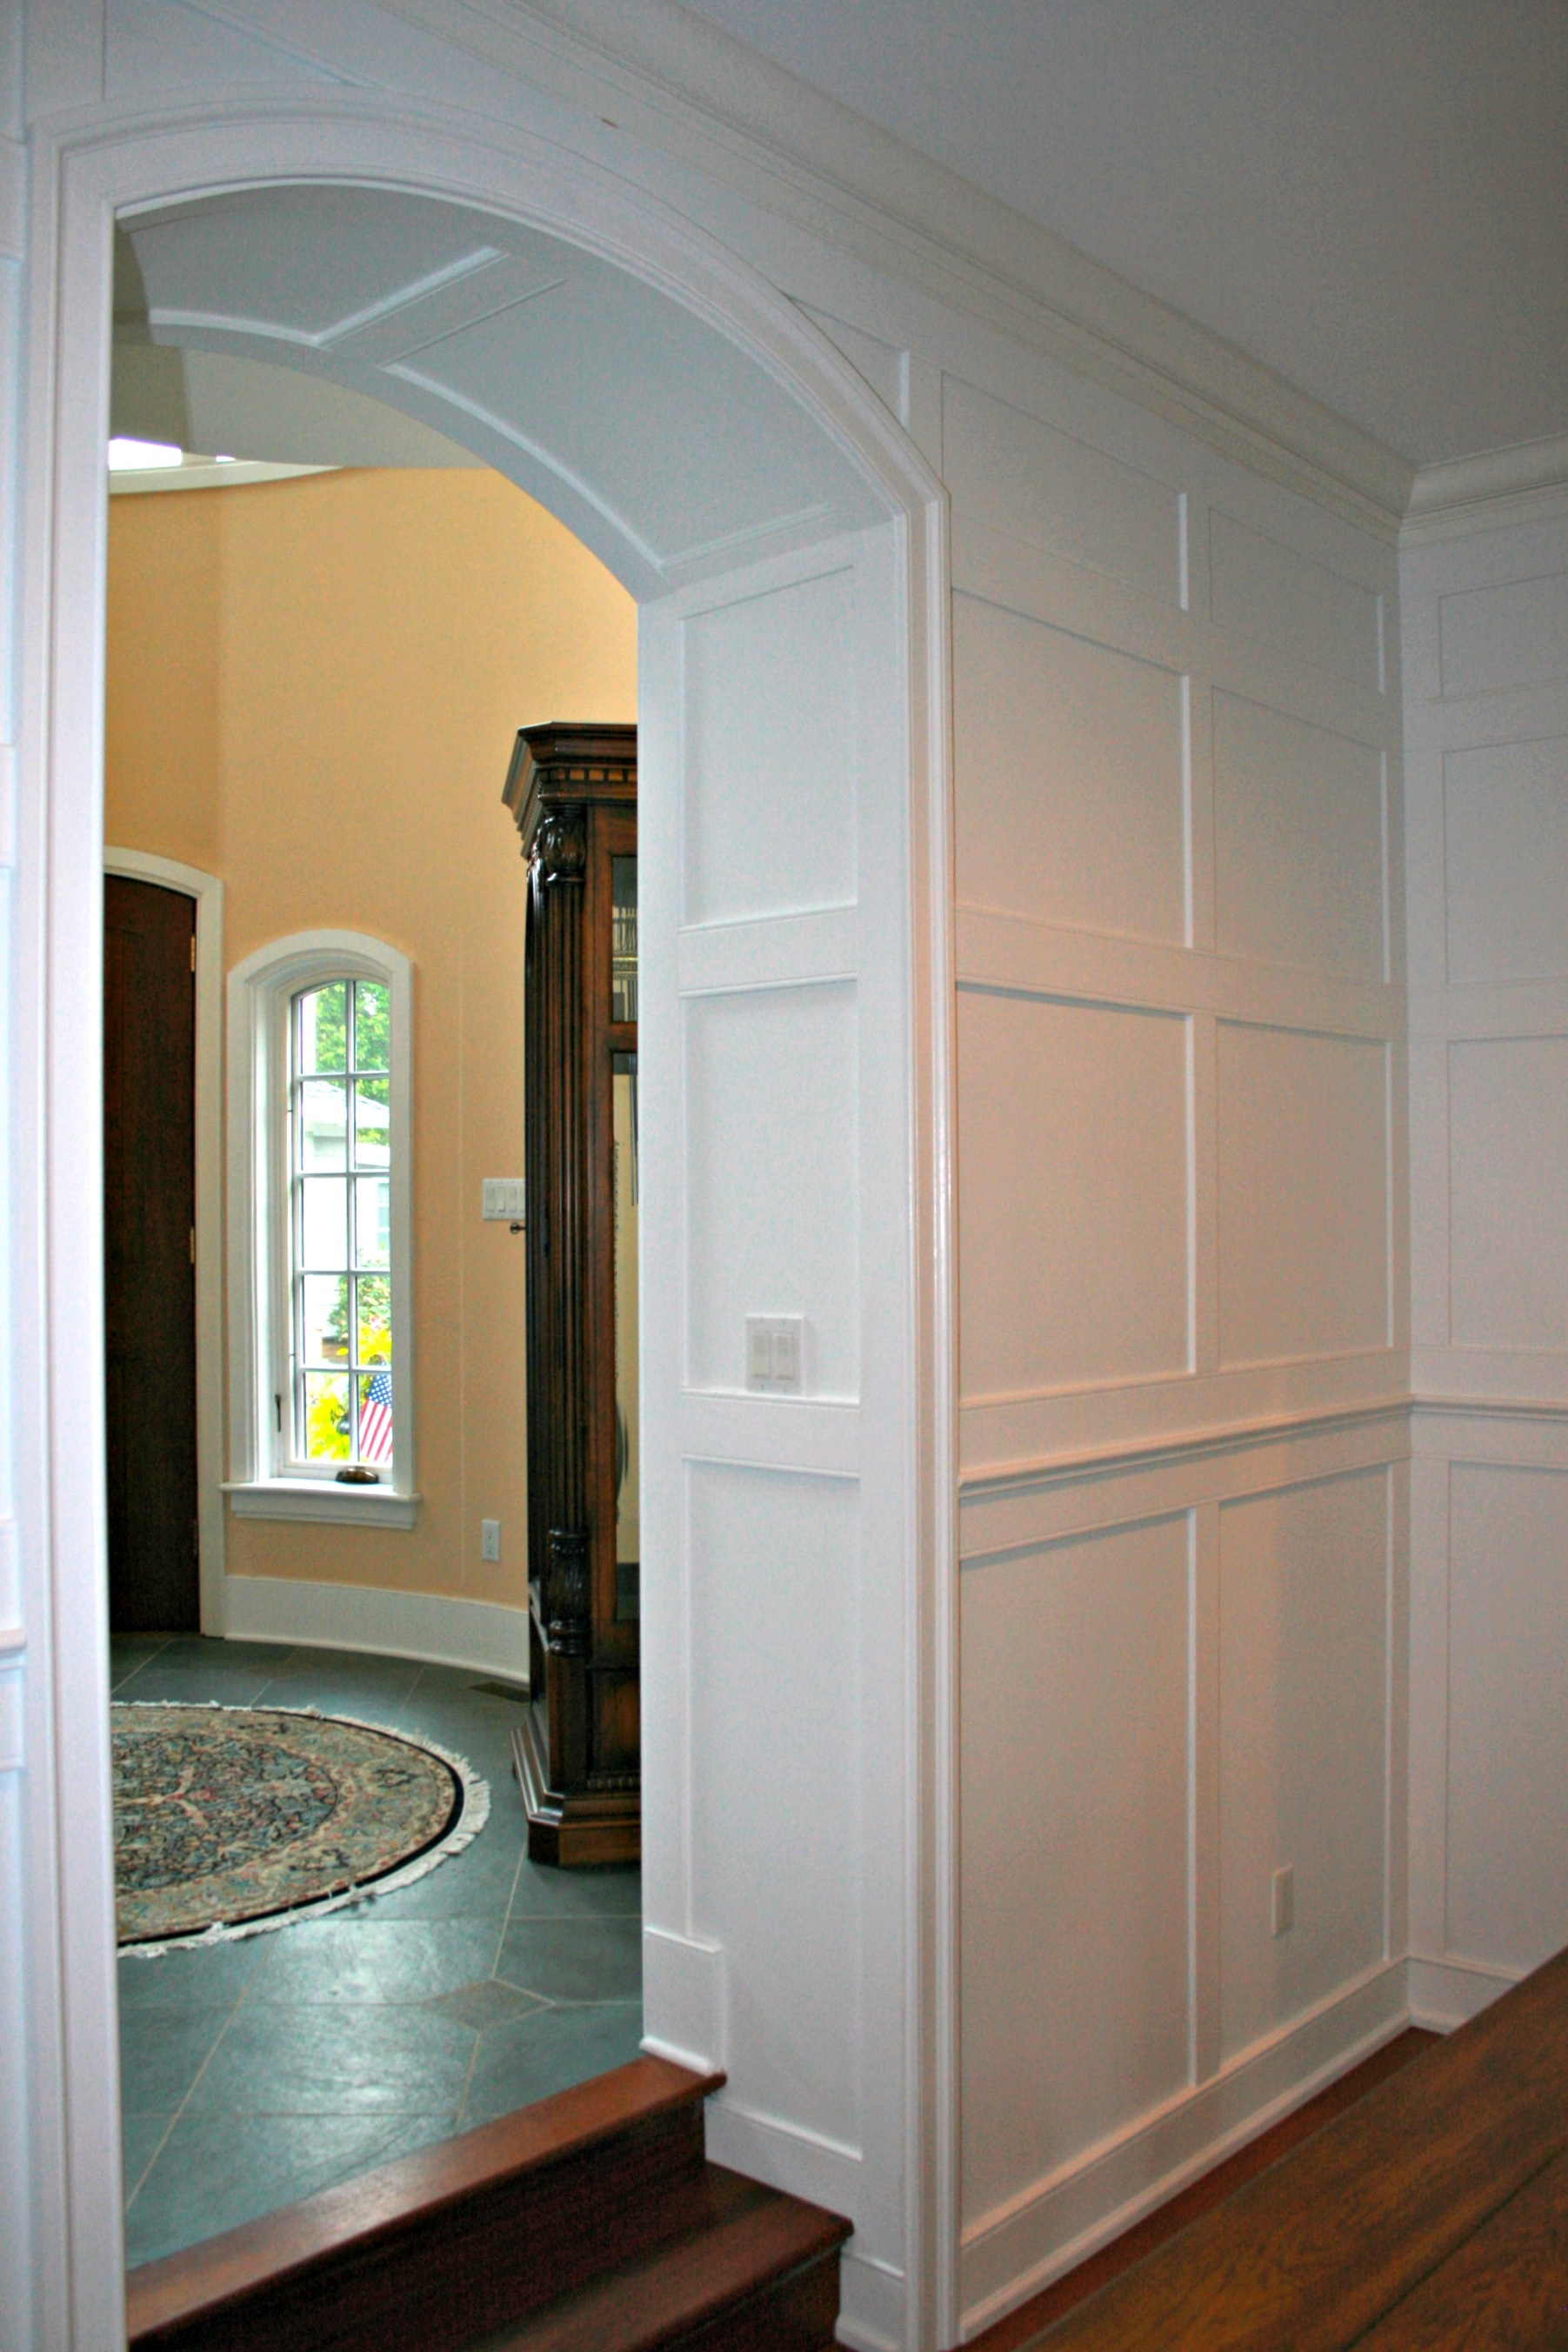 Door casing and window trim installation by deacon home enhancement - Wainscoting Installation By Deacon Home Enhancement